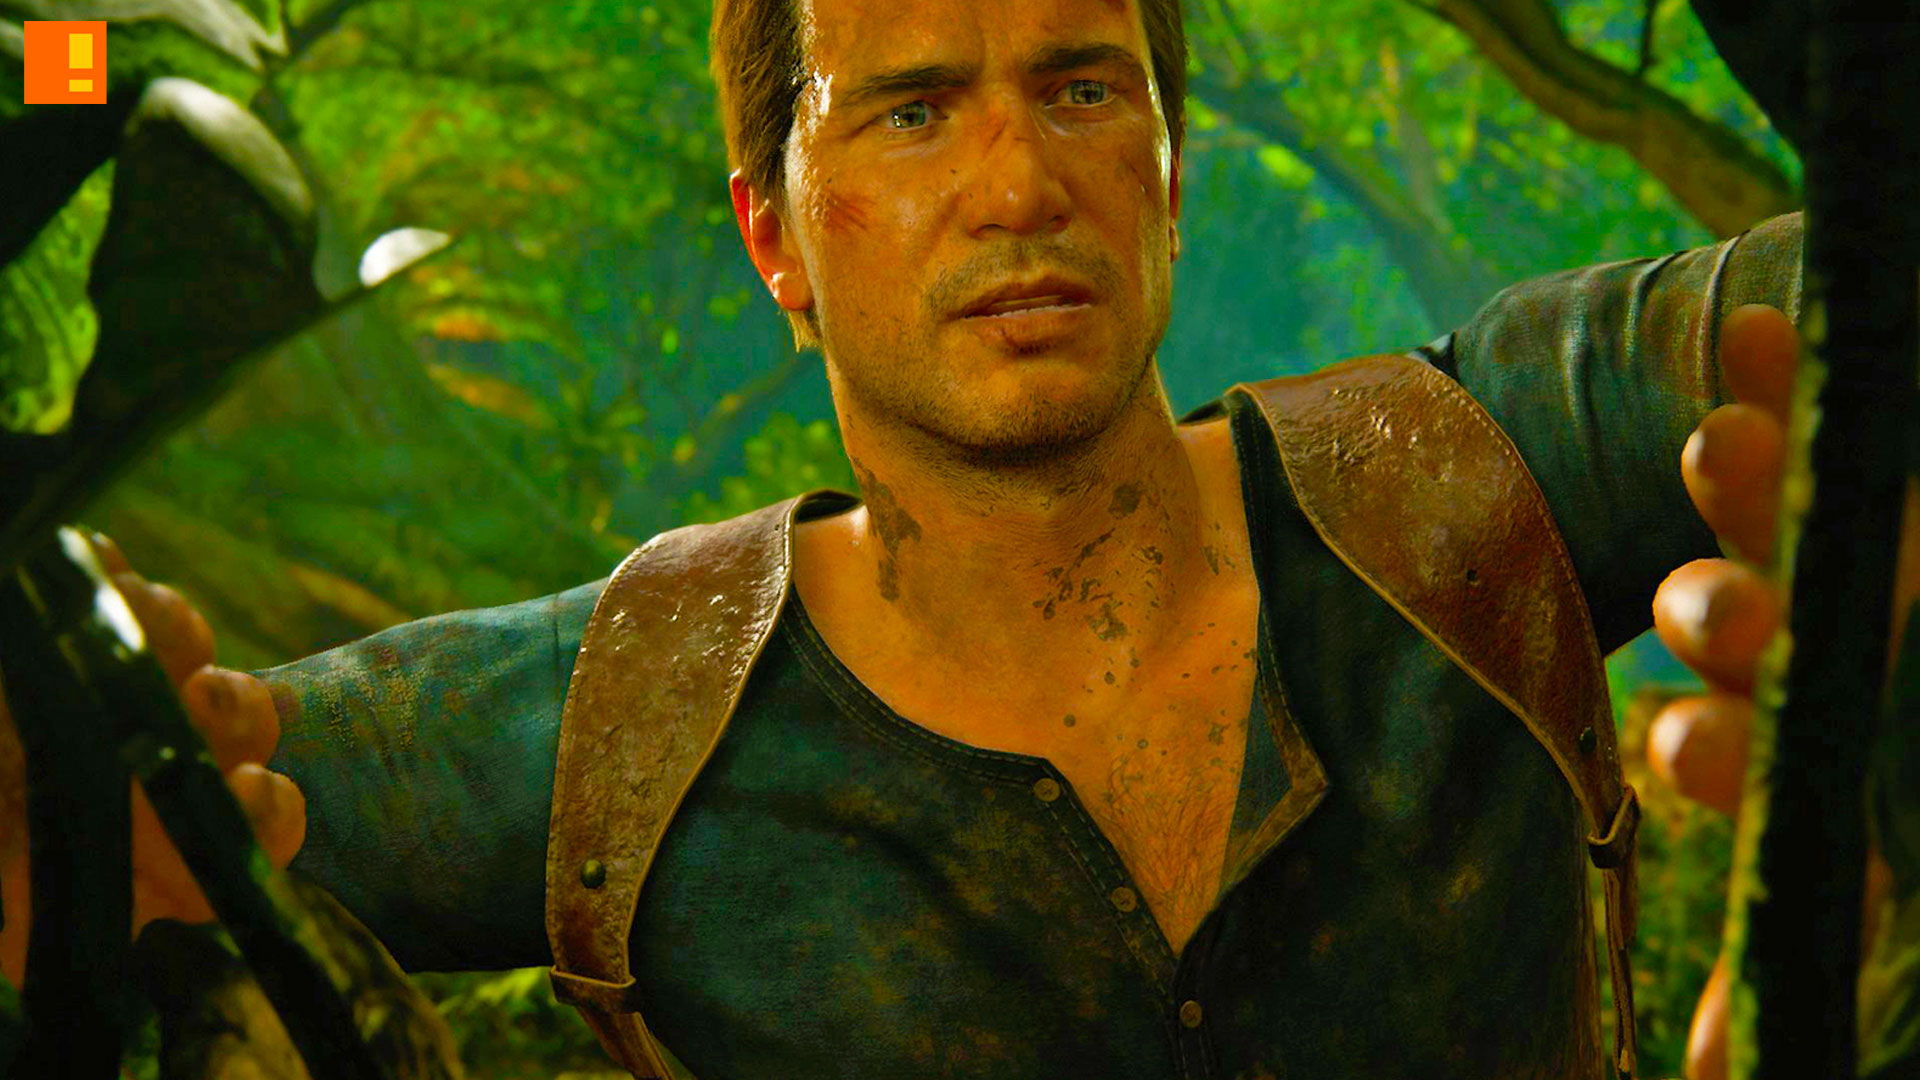 uncharted 4, nathan drake, uncharted 4 release date, uncharted 4 review, uncharted 4 ps4, uncharted 4 gameplay, uncharted 4 ps4 bundle, uncharted 4 multiplayer, uncharted 4 beta, uncharted 4 special edition, uncharted 4 ps3, uncharted 4 xbox one, uncharted 4 trailer, uncharted 4 release, uncharted 4 a thief's end, uncharted 4 a thief's end libertalia collector's edition, uncharted 4 a thief's end release date, uncharted 4 a thief's end special edition, uncharted 4 a thief's end trailer, uncharted 4 a thief's end gameplay,release date,